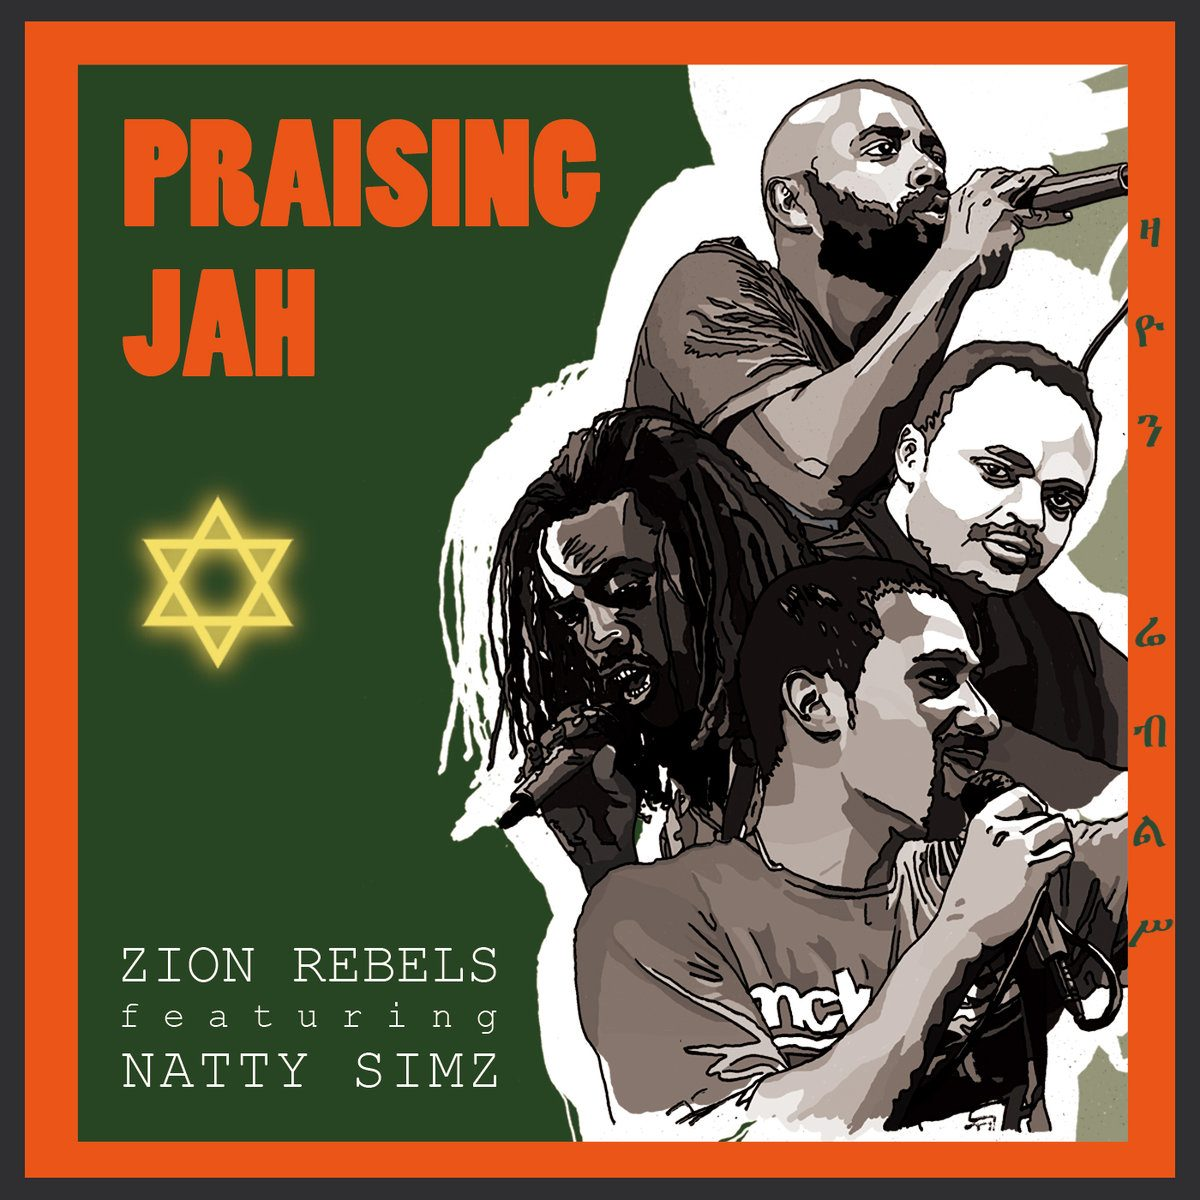 Zion Rebels - Praising Jah (feat. Natty Simz)